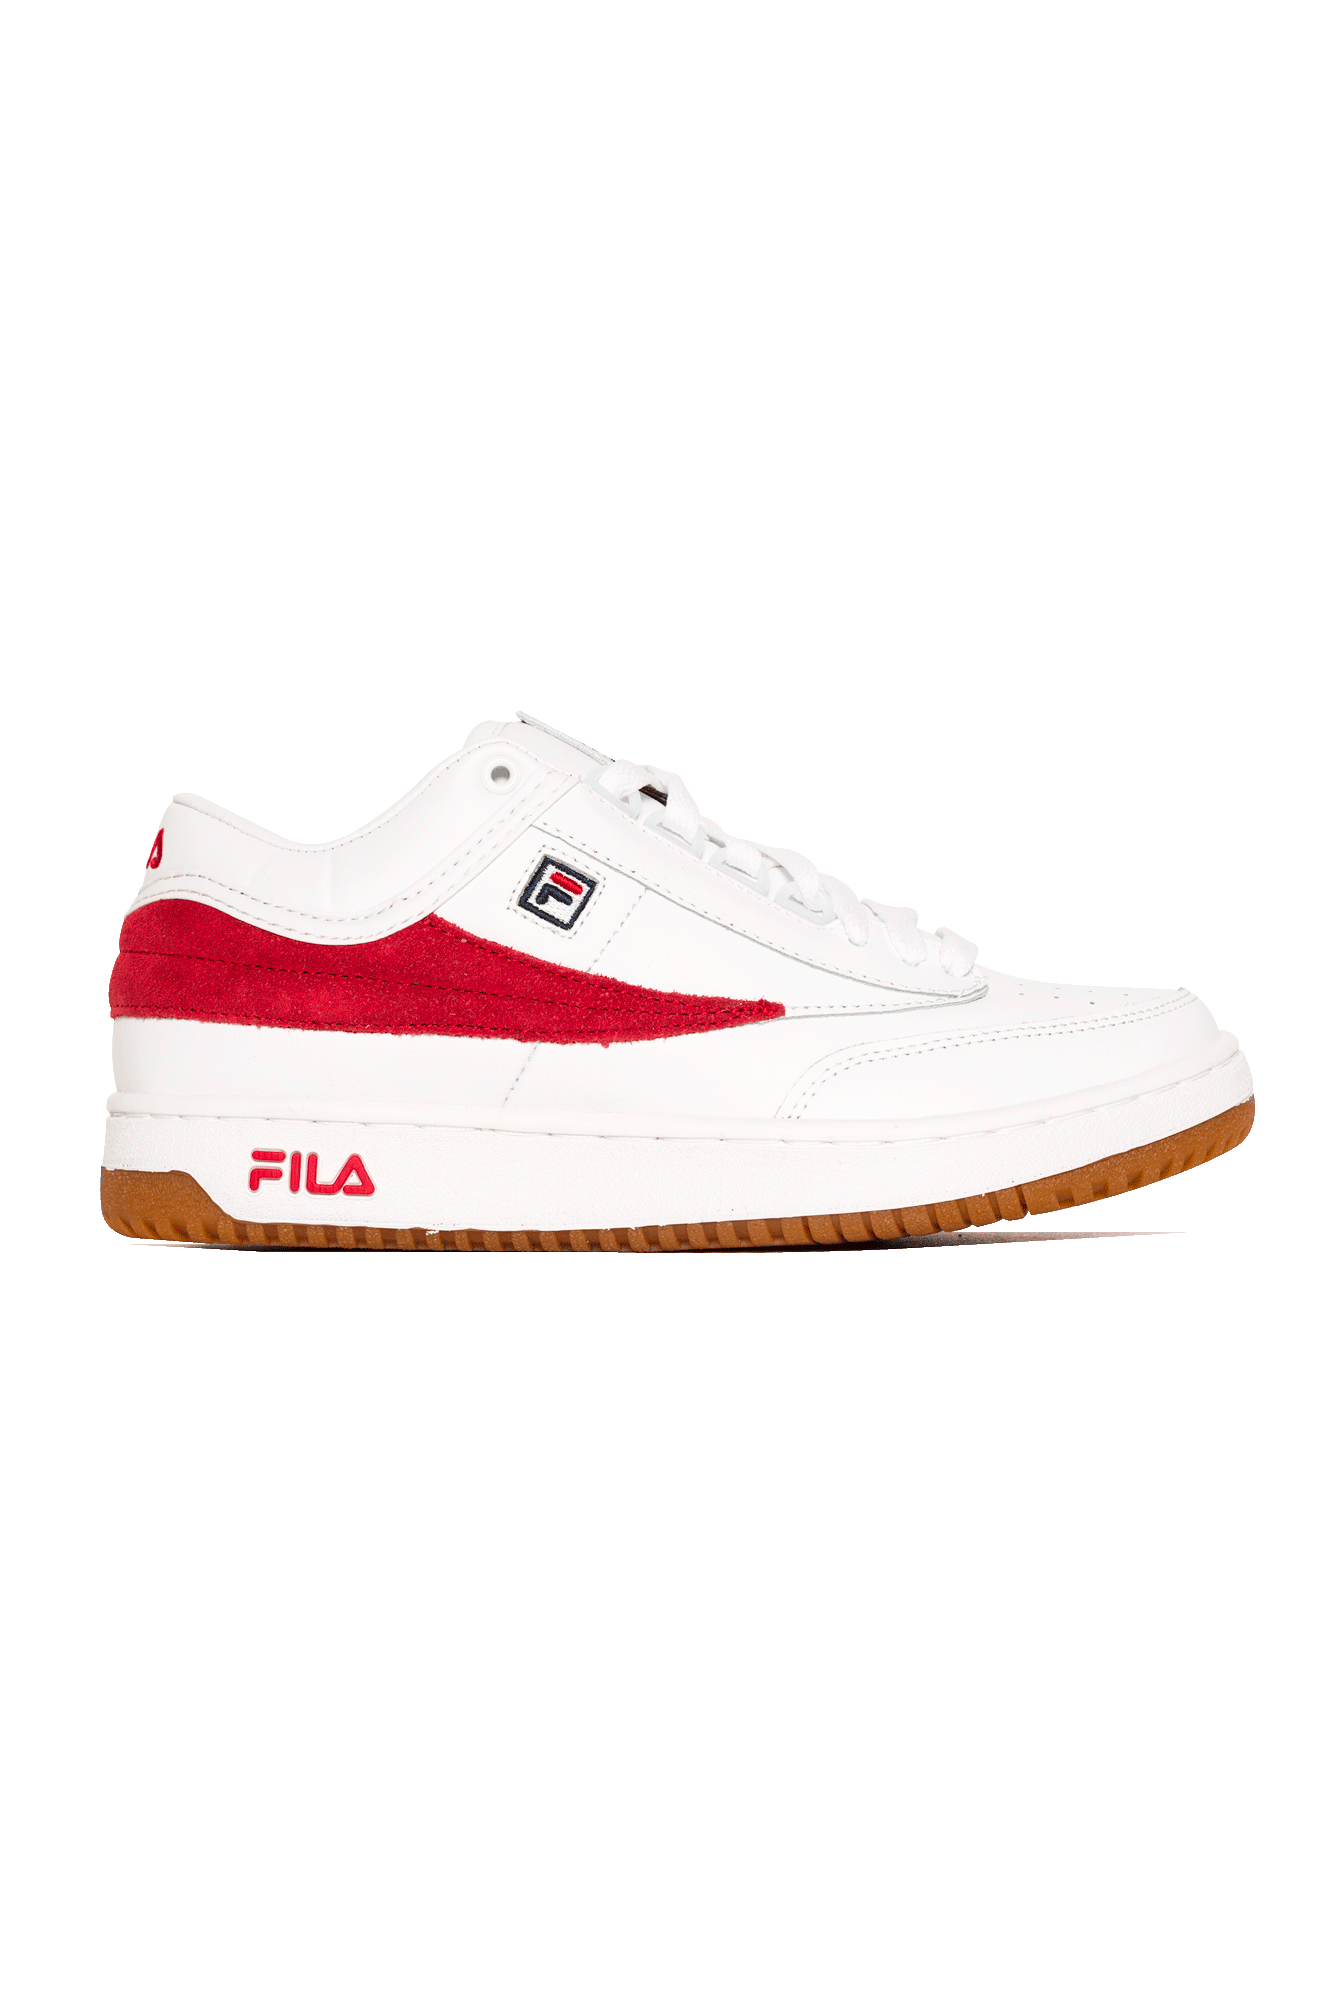 Fila Sneakers T1 Mid White 1010496#000#00H#8 - One Block Down